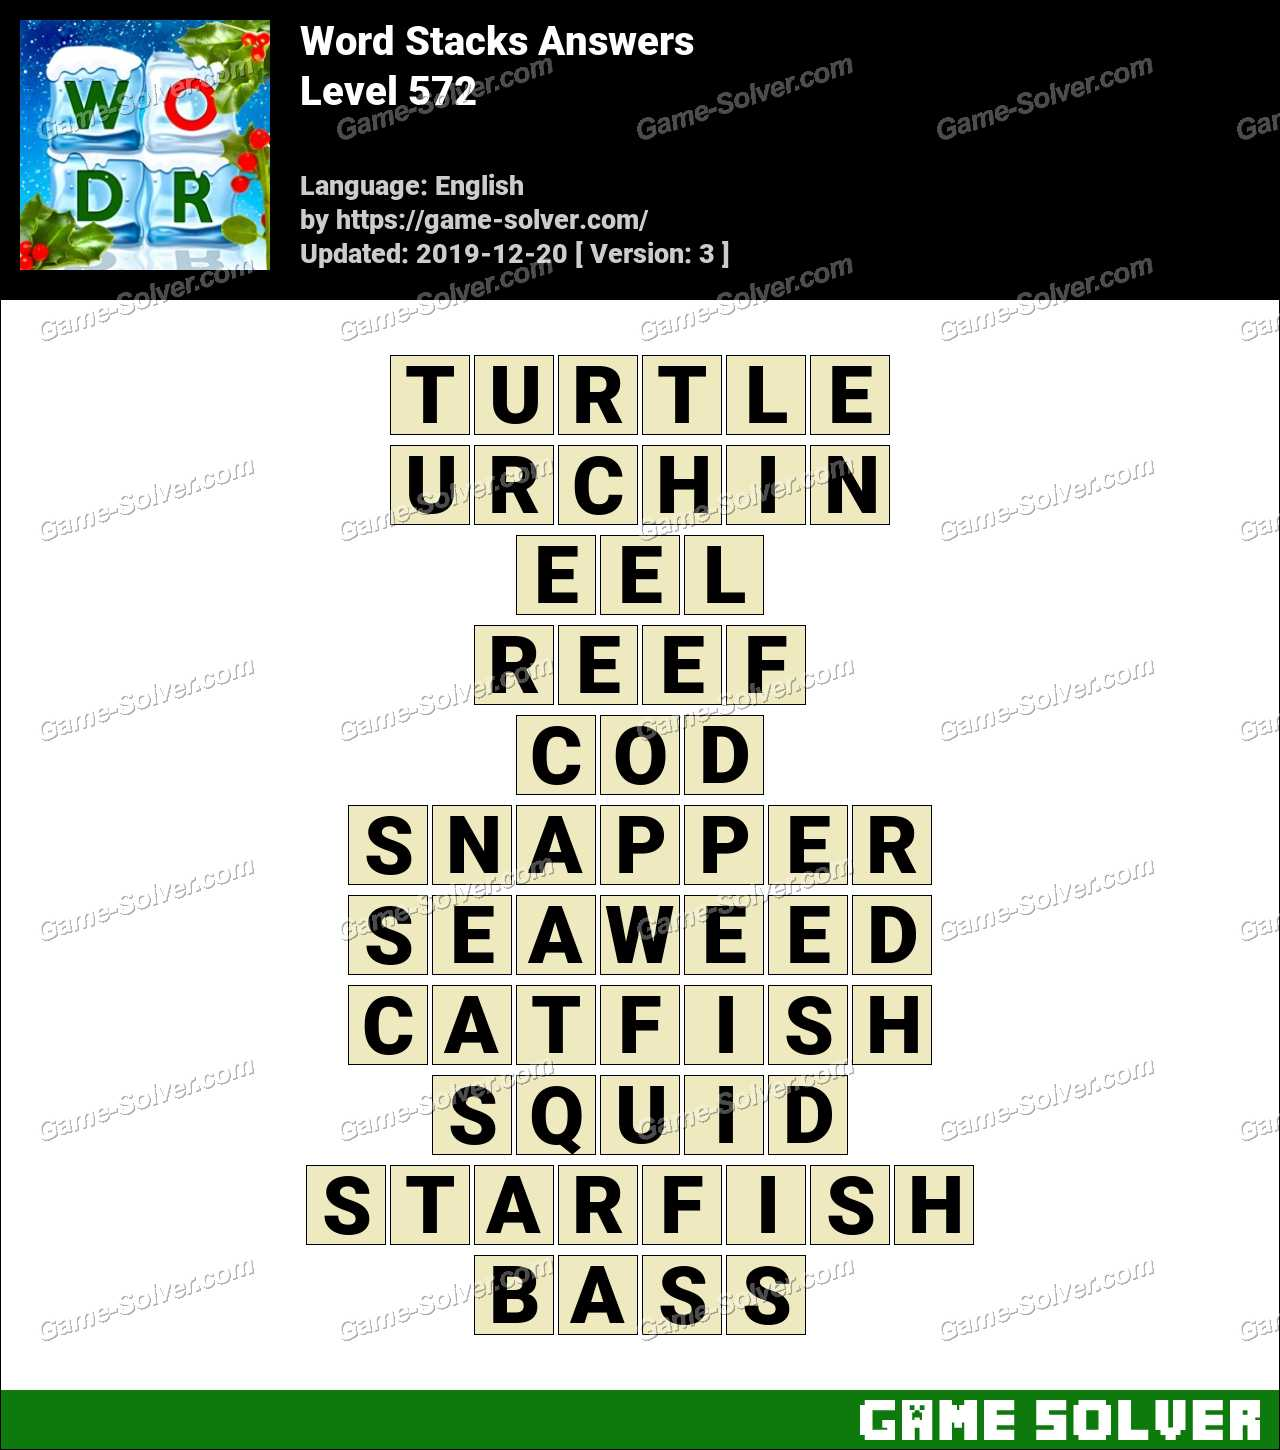 Word Stacks Level 572 Answers